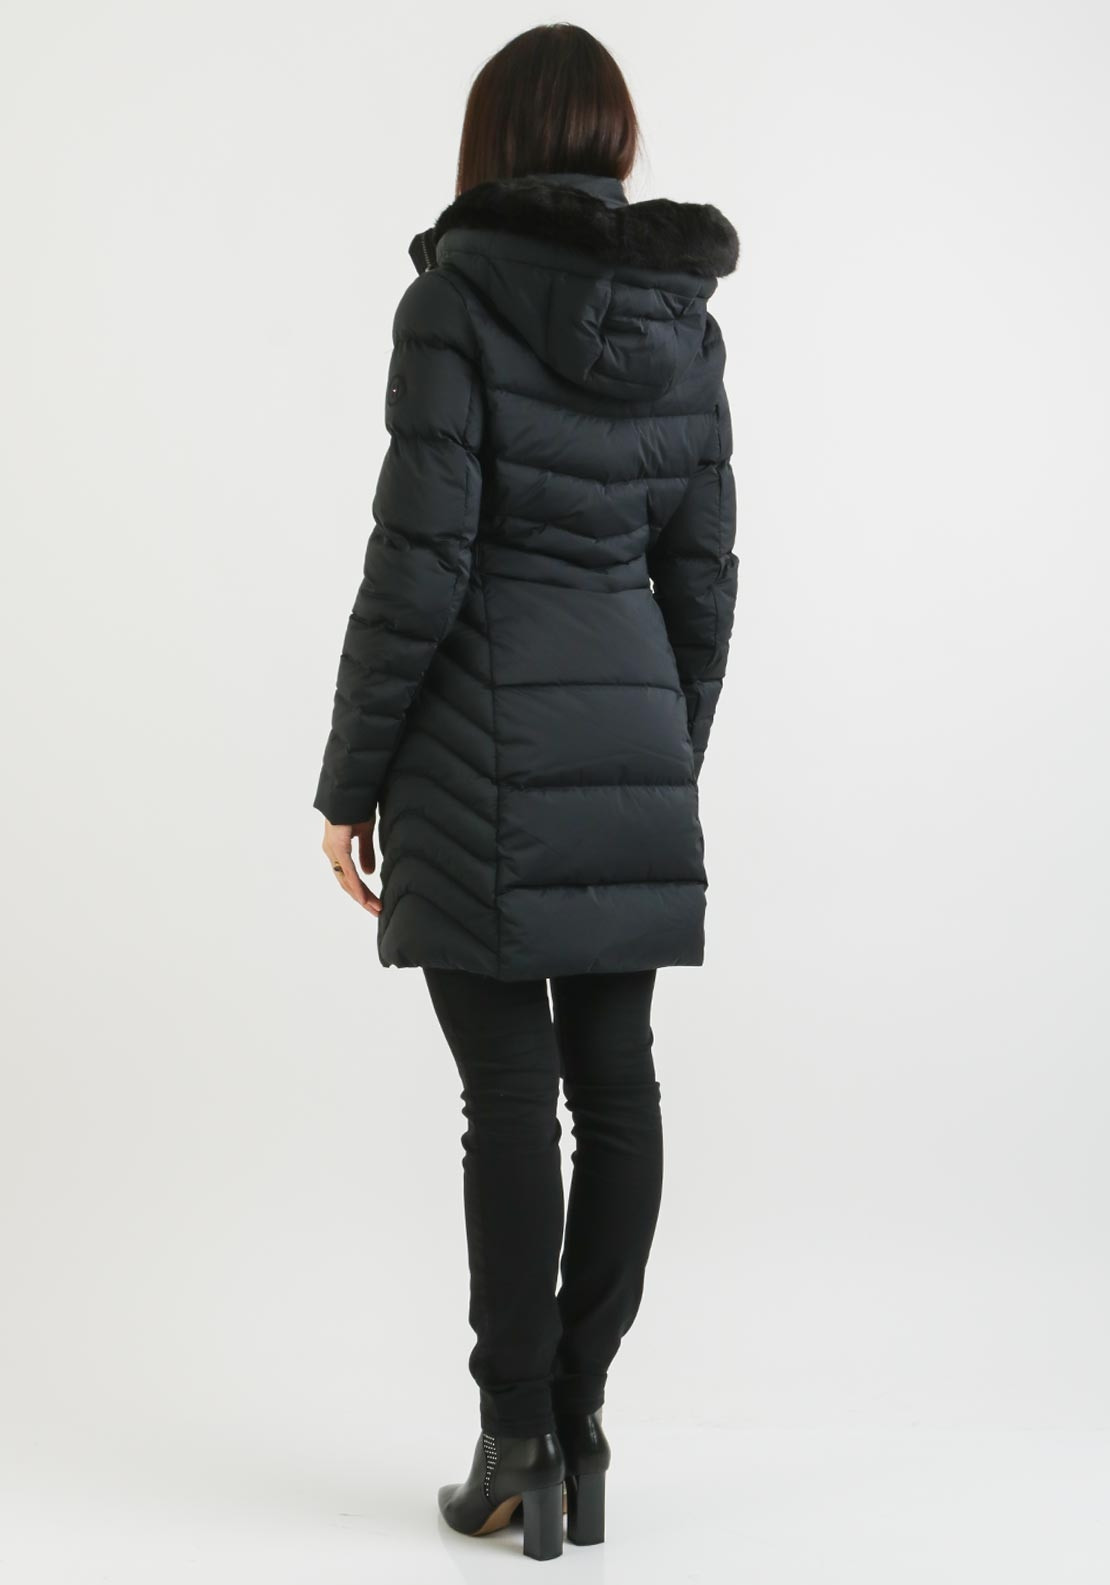 3da2ce0c Tommy Hilfiger Womens April Quilted Coat, Black. Be the first to review  this product